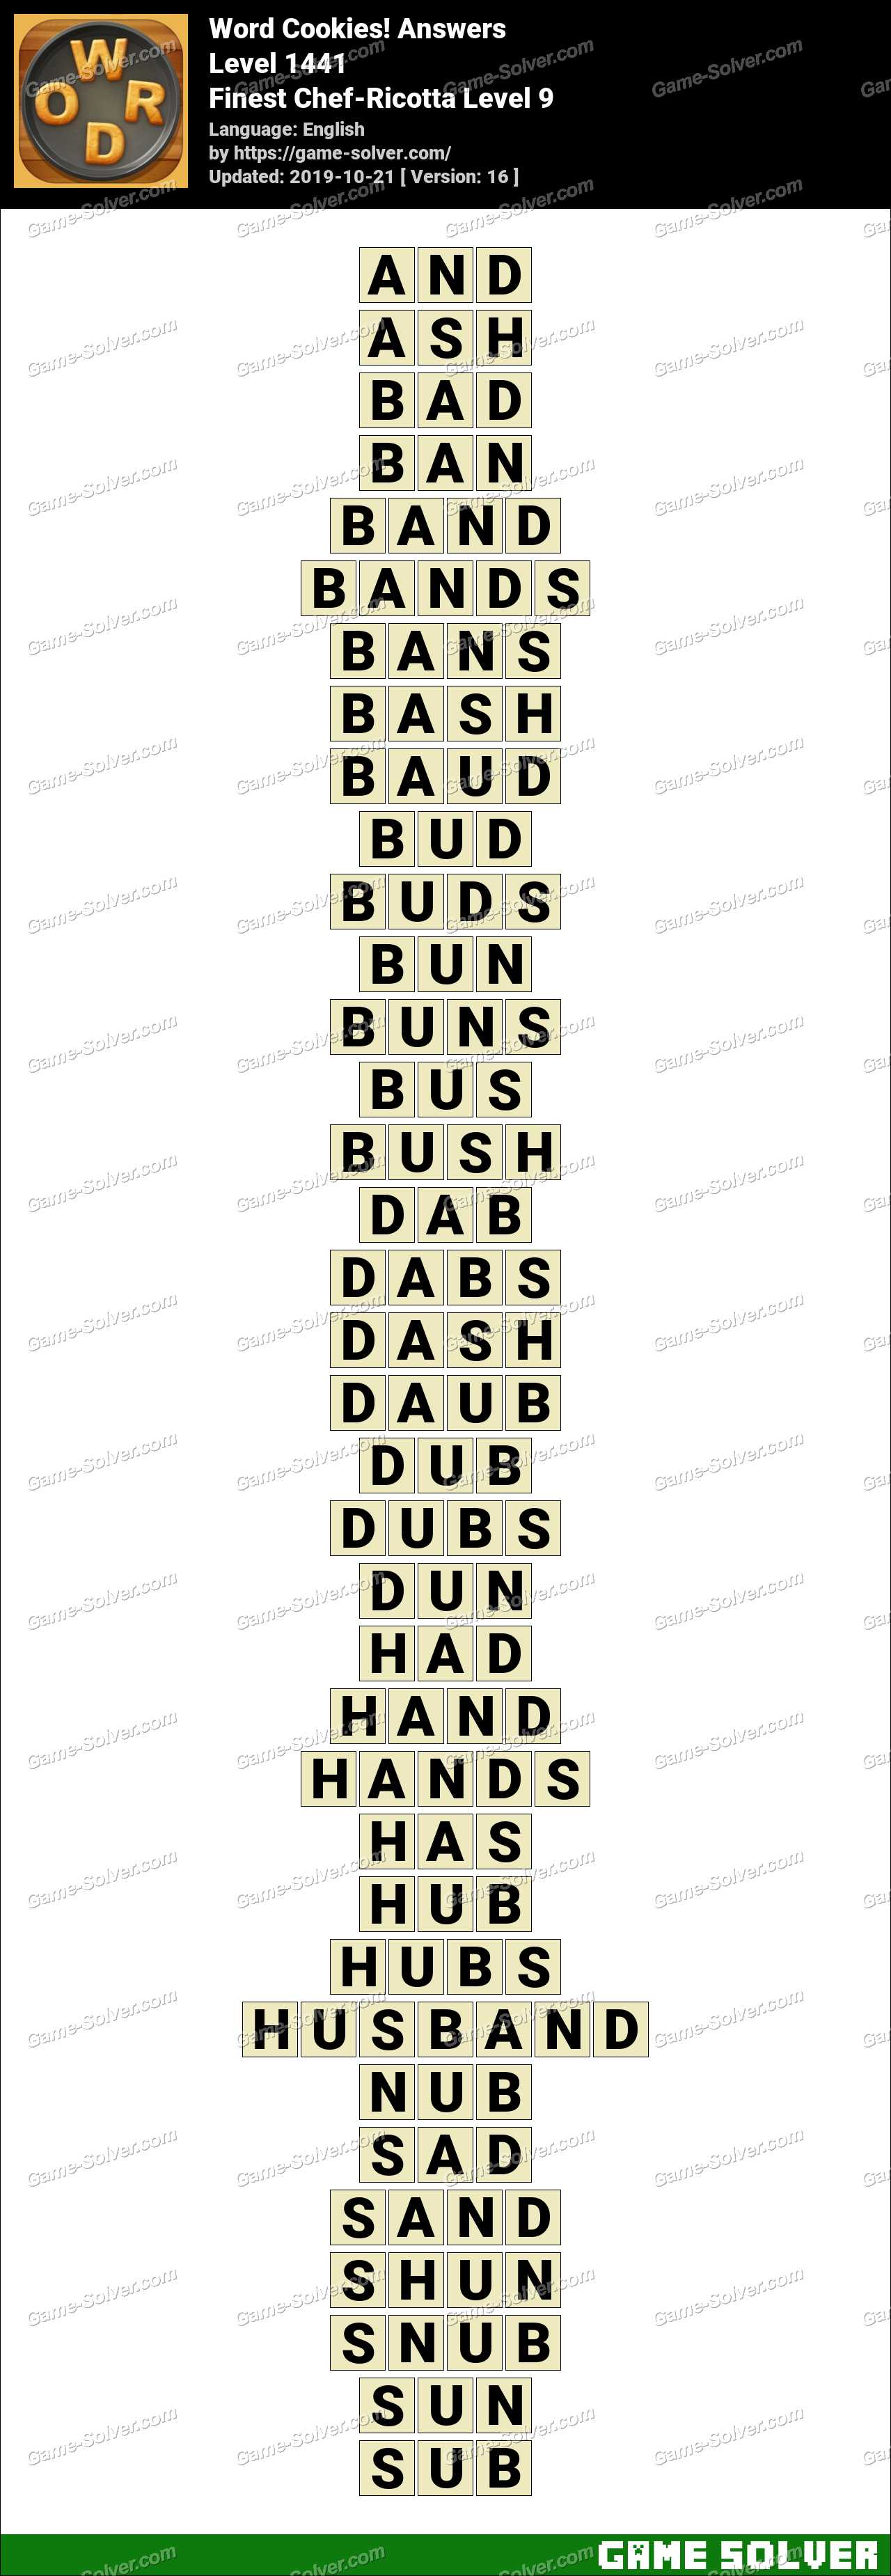 Word Cookies Finest Chef-Ricotta Level 9 Answers